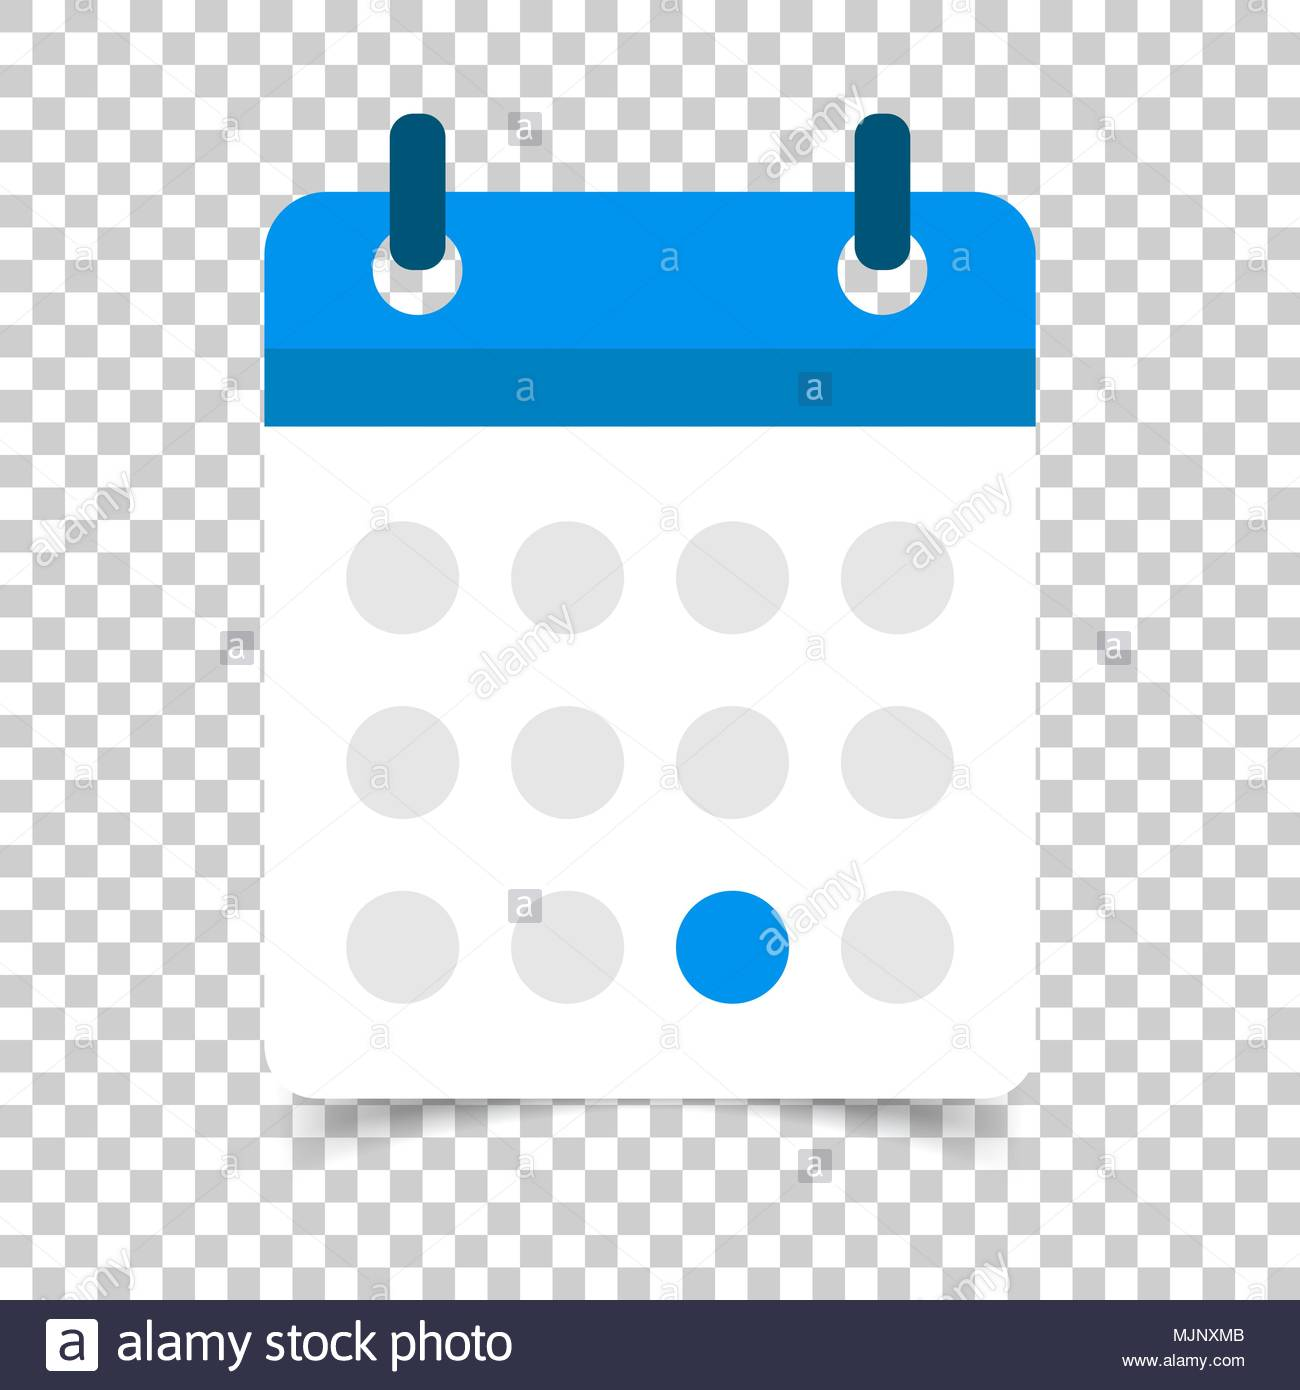 Calendar agenda vector icon in flat style Reminder illustration 1300x1390